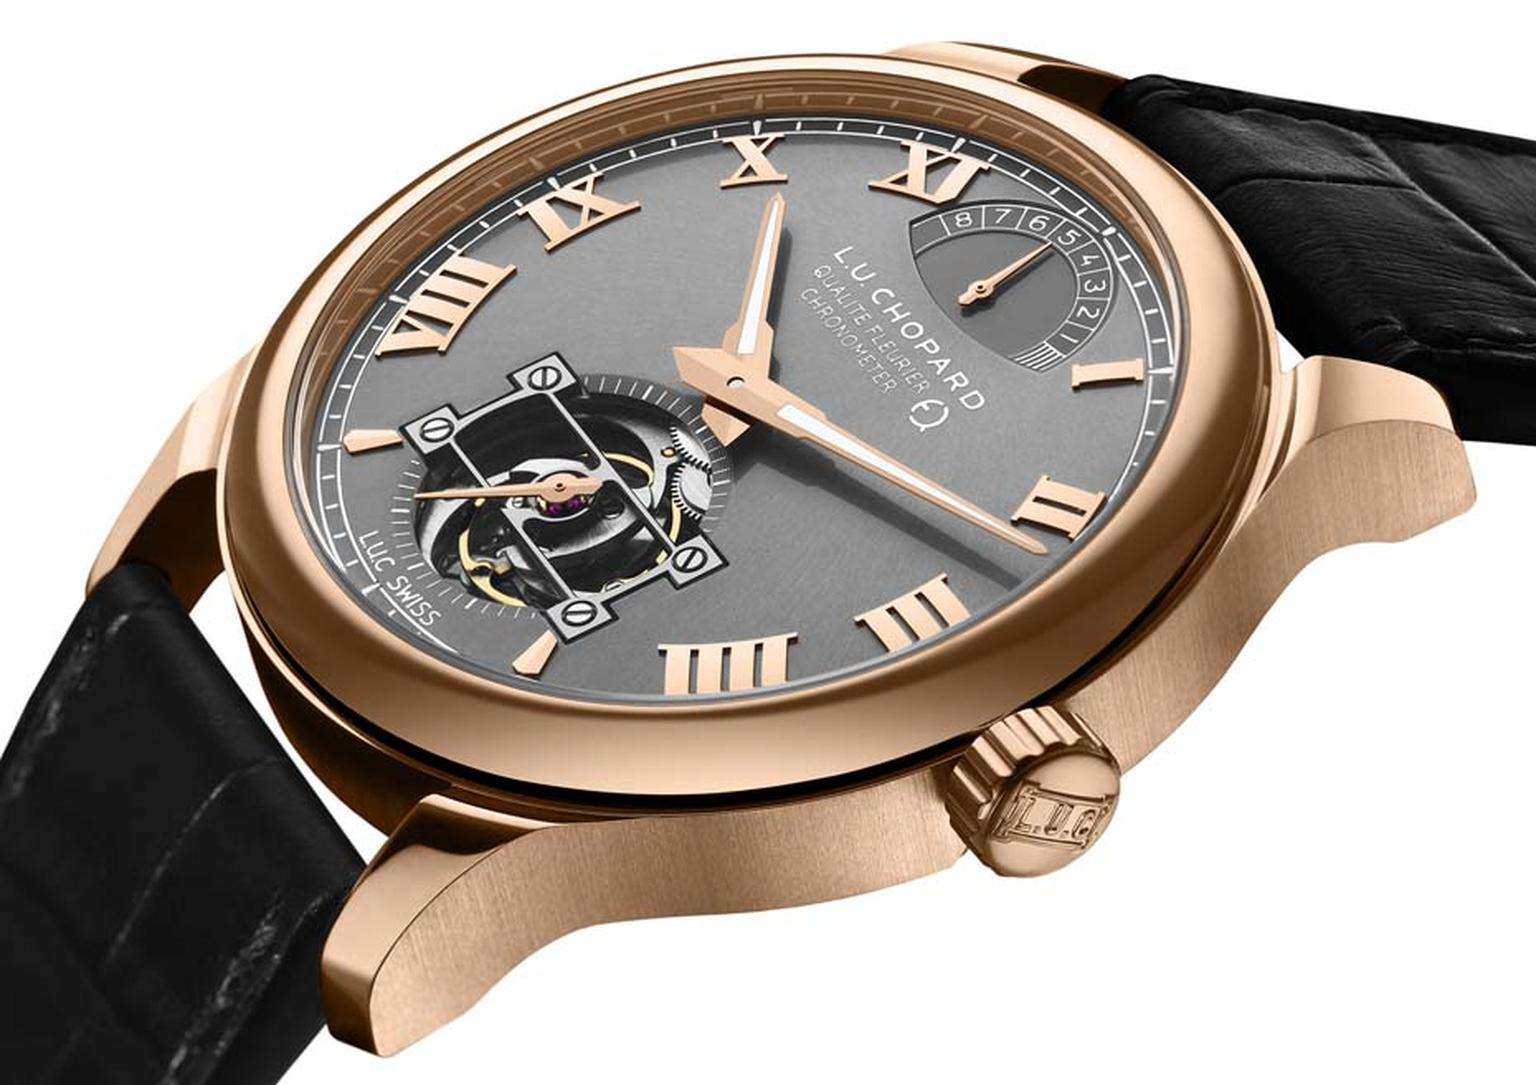 Chopard's new L.U.C Tourbillon QF Fairmined watch is the first watch in the world to be made entirely out of Fairmined gold